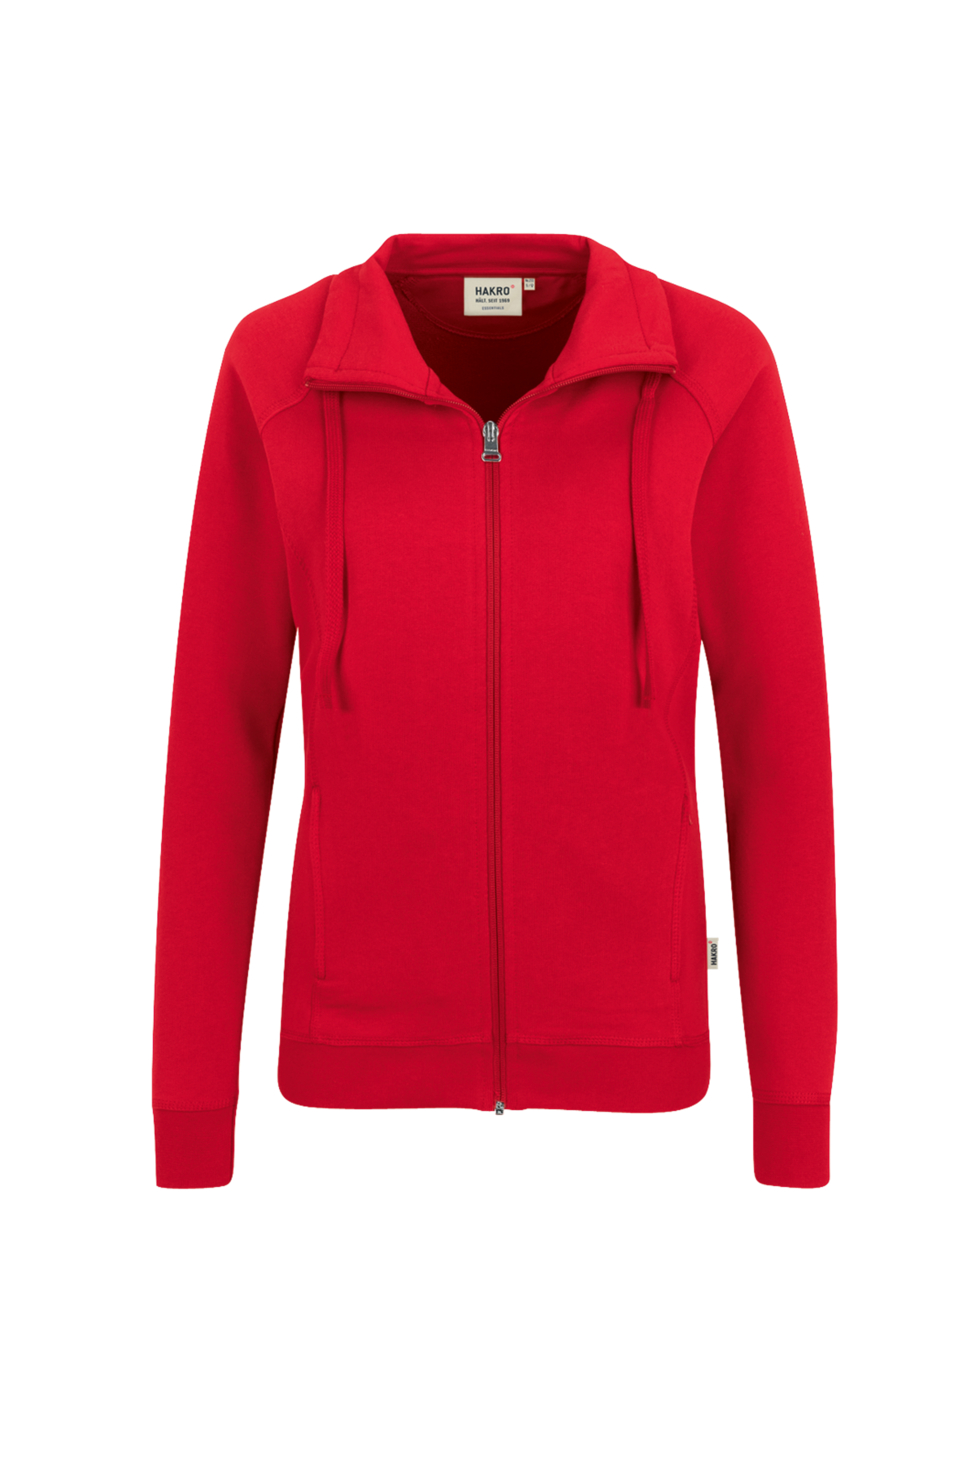 No406 - Damen-Sweatjacke College